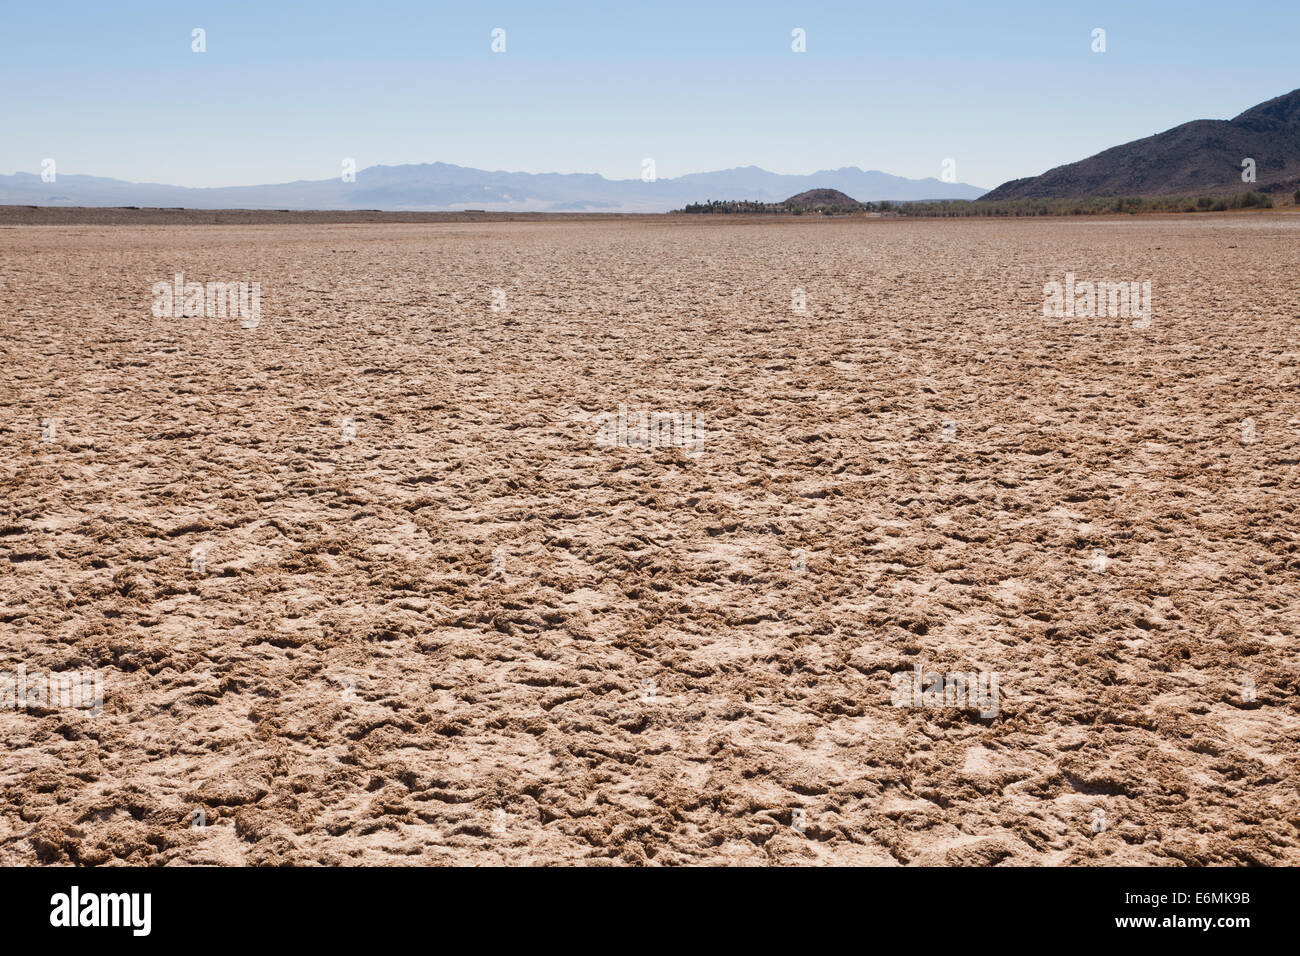 Dry lake bed in the American Southwest desert - Mojave Desert, USA - Stock Image